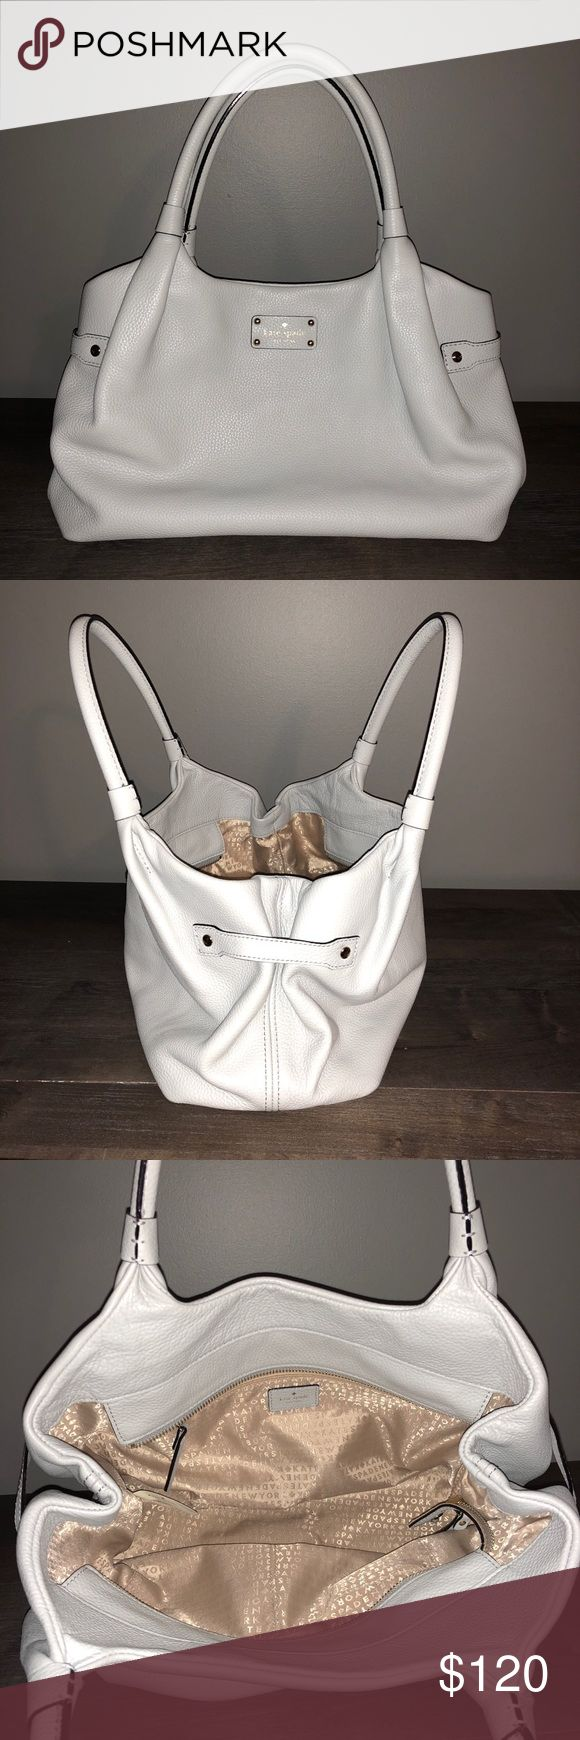 Kate Spade Purse Beautiful light grey shoulder bag great for any season! Very gently used. Only carried the bag 4 days on vacation. kate spade Bags Shoulder Bags